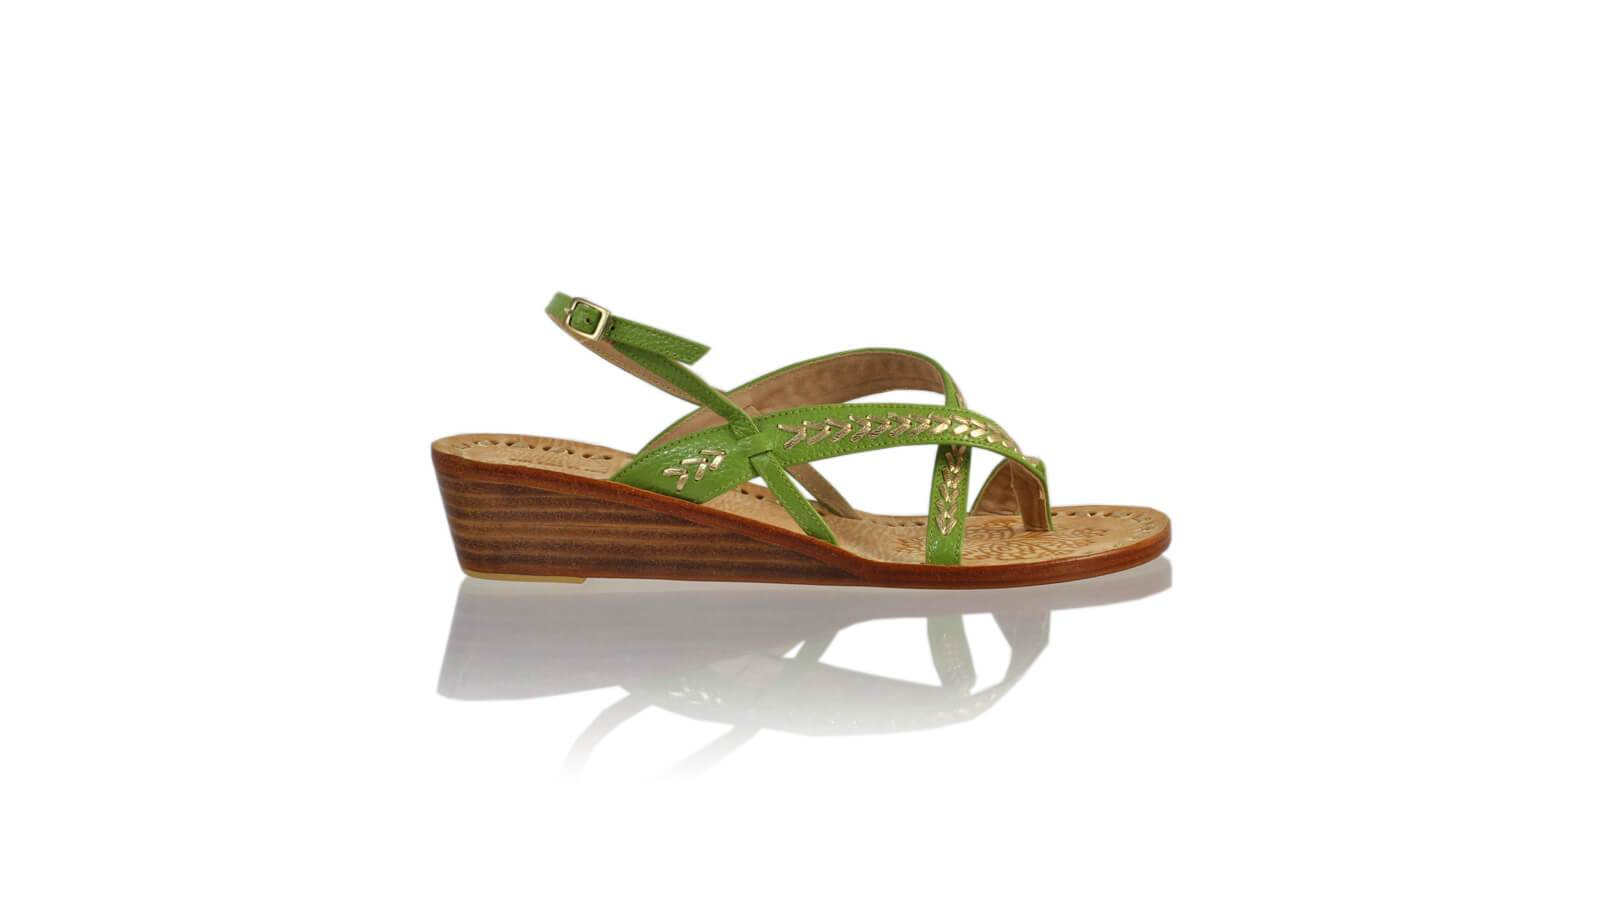 Leather-shoes-Romance 35mm Wedges - Green Bkk & Gold-sandals wedges-NILUH DJELANTIK-NILUH DJELANTIK